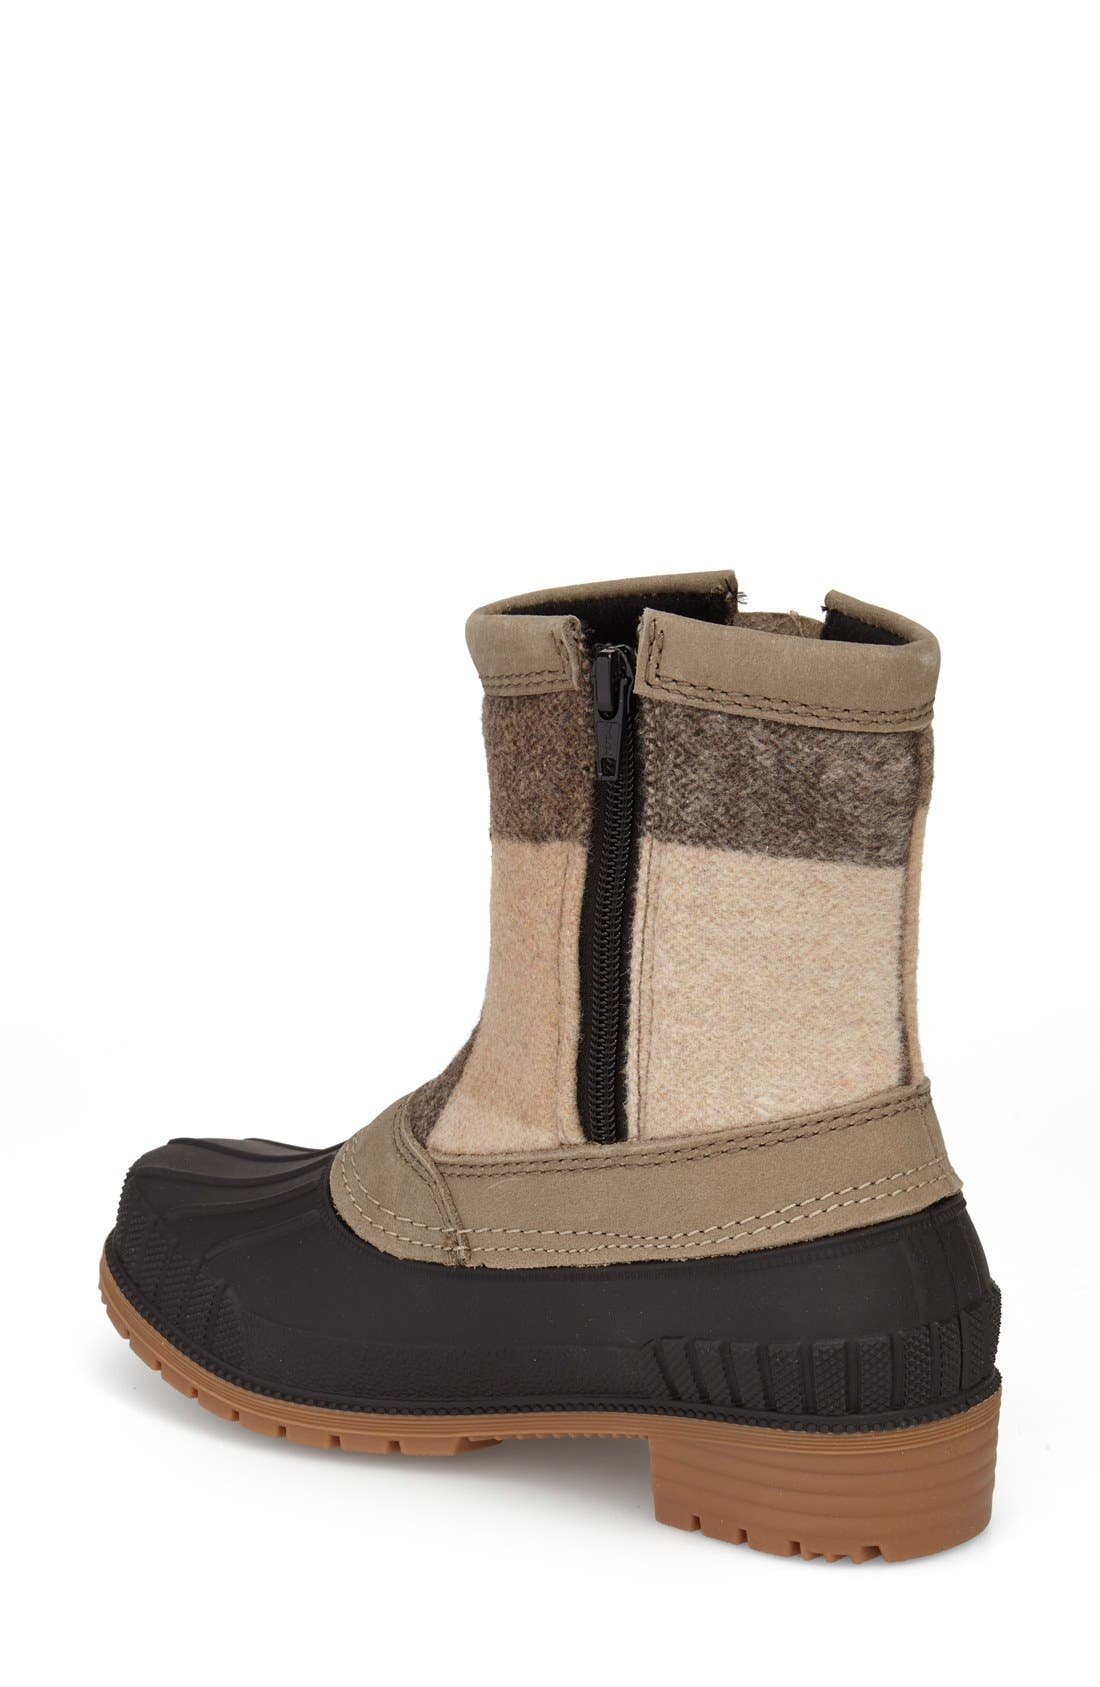 Avelle Waterproof Boot,                             Alternate thumbnail 2, color,                             Taupe Leather